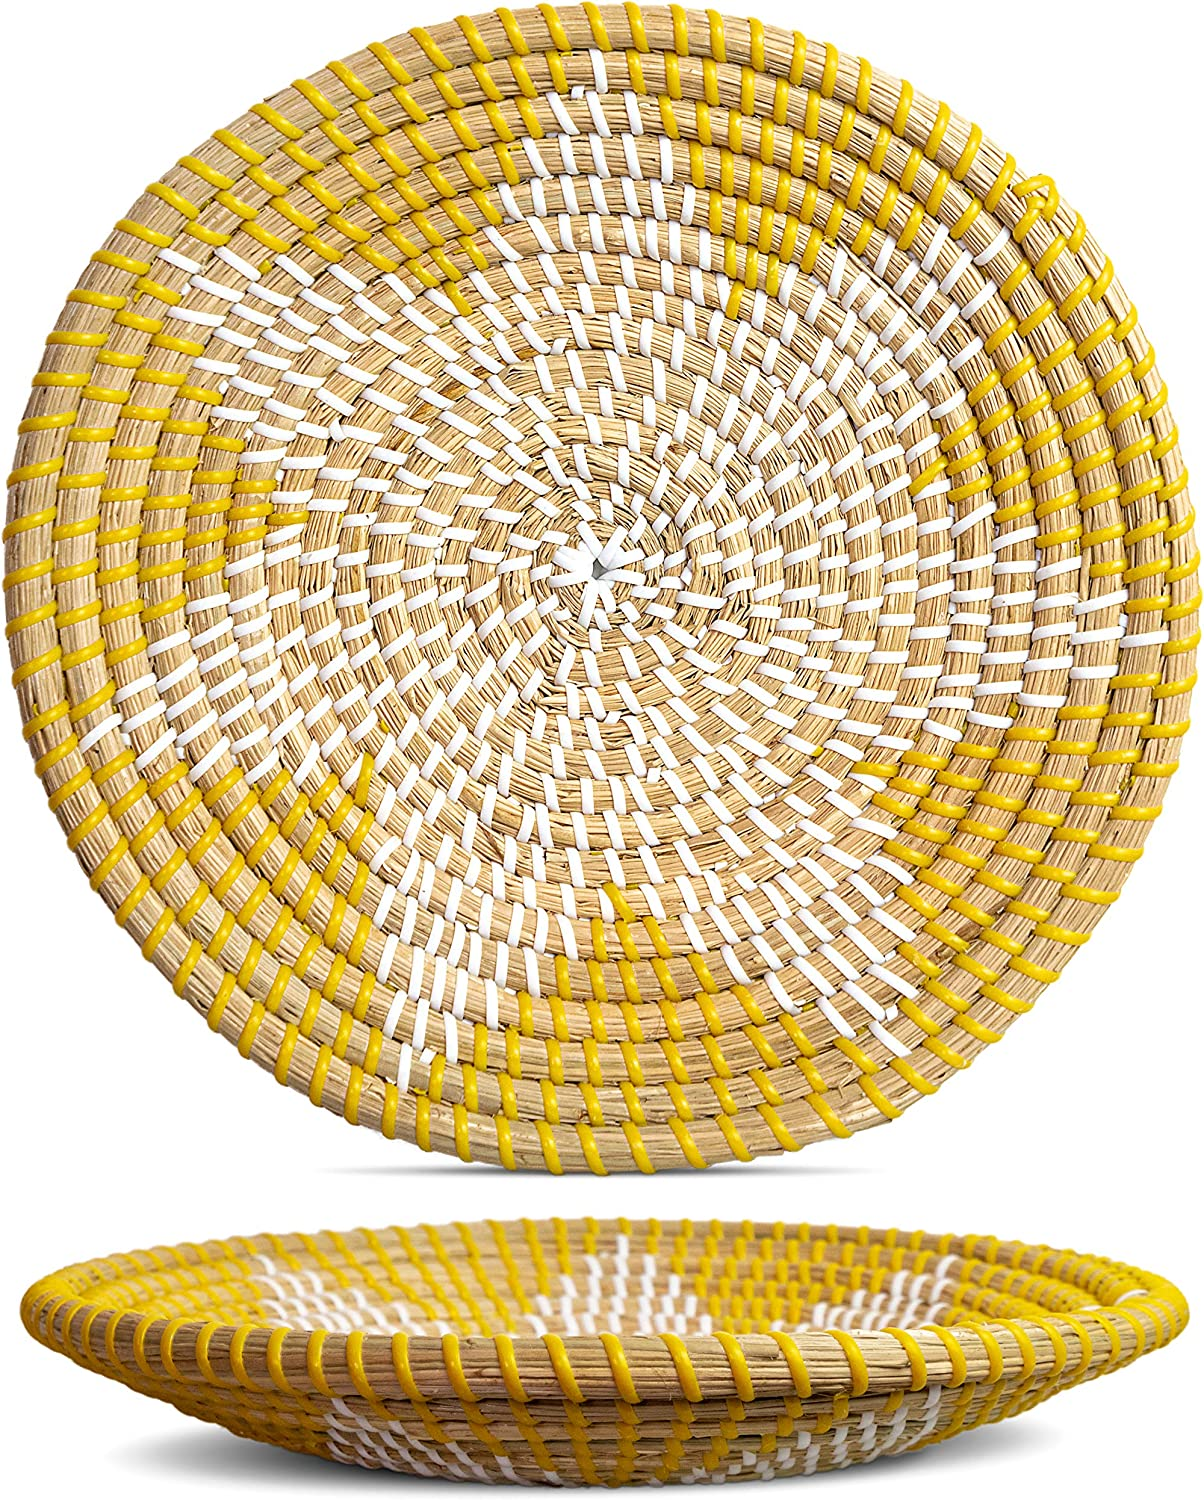 Handmade Wall Basket Decor | Woven Basket Wall Decor | Natural Boho Home Decor | Round Woven Basket | Hanging Wall Decor for Home Bedroom, Kitchen, Living Room | Decorative Seagrass Bowl - Goldenrod